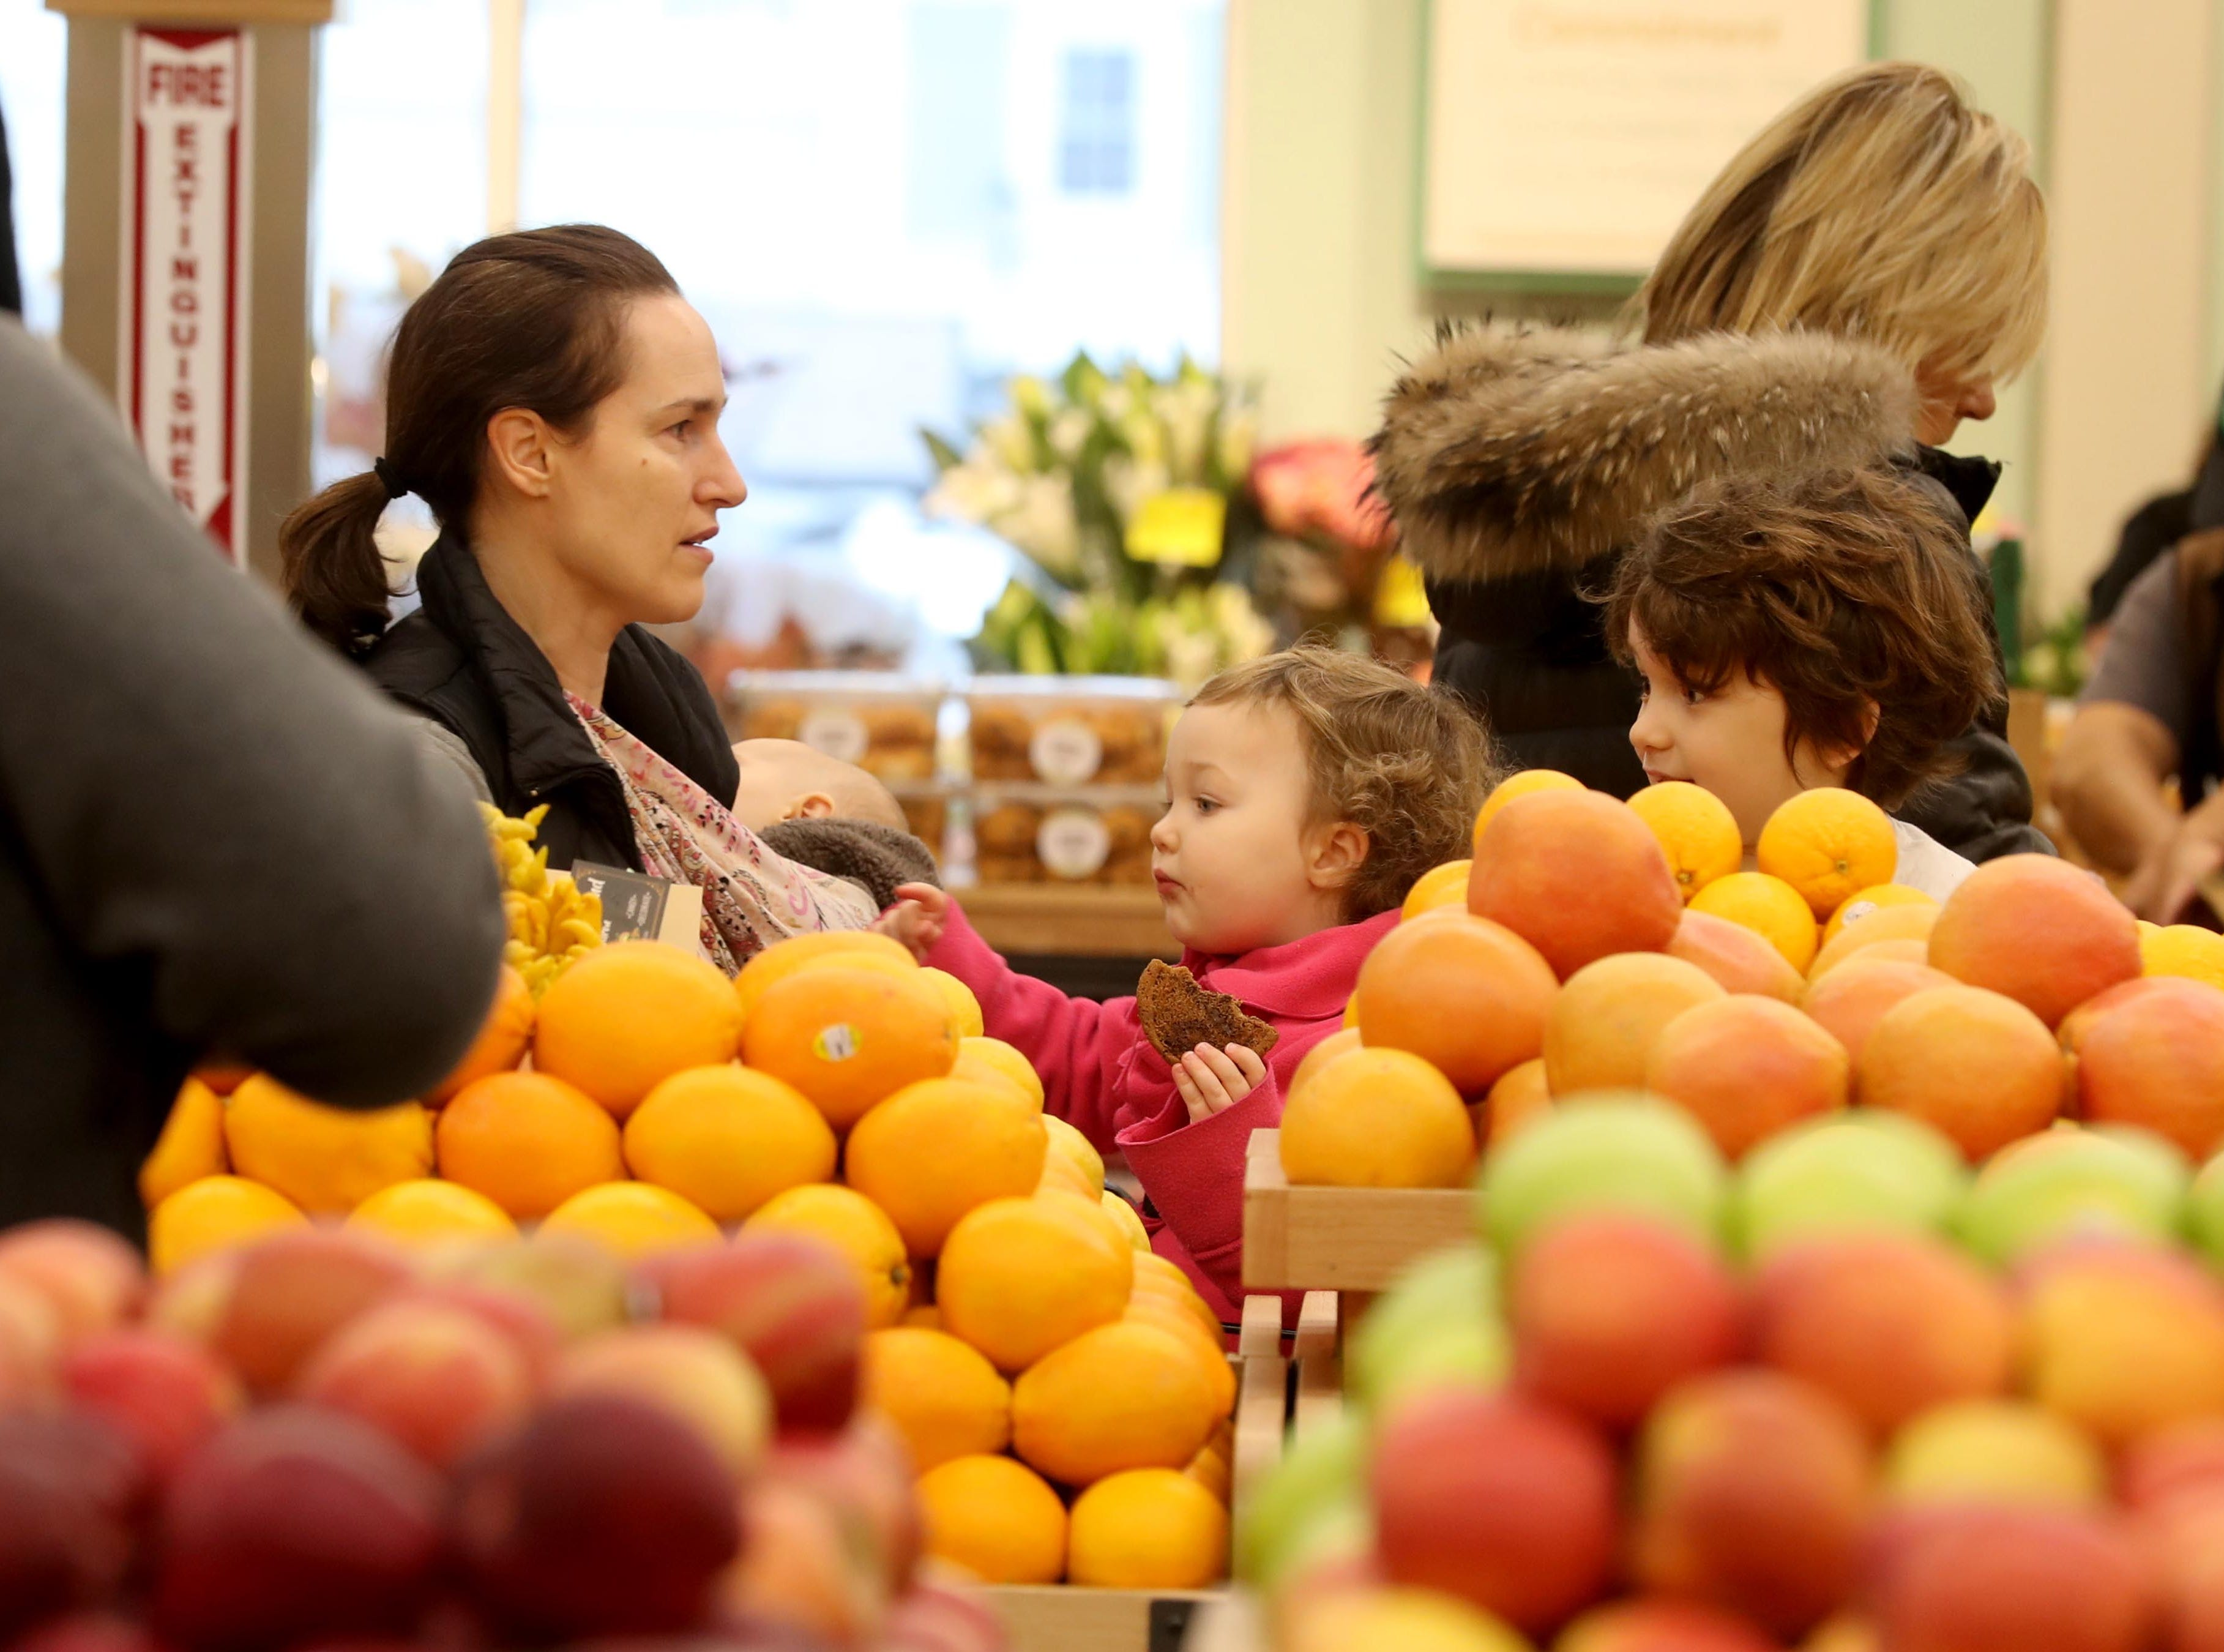 Shoppers make their way through the produce section at the new Whole Foods in Chappaqua Dec. 15, 2018. The 40,000 square foot store opened to shoppers on the site of the formers Readers Digest headquarters. The New Castle Town Board and Planning Board approved a temporary traffic plan for the Route 117-Roaring Brook Road intersection that allowed the store to open.